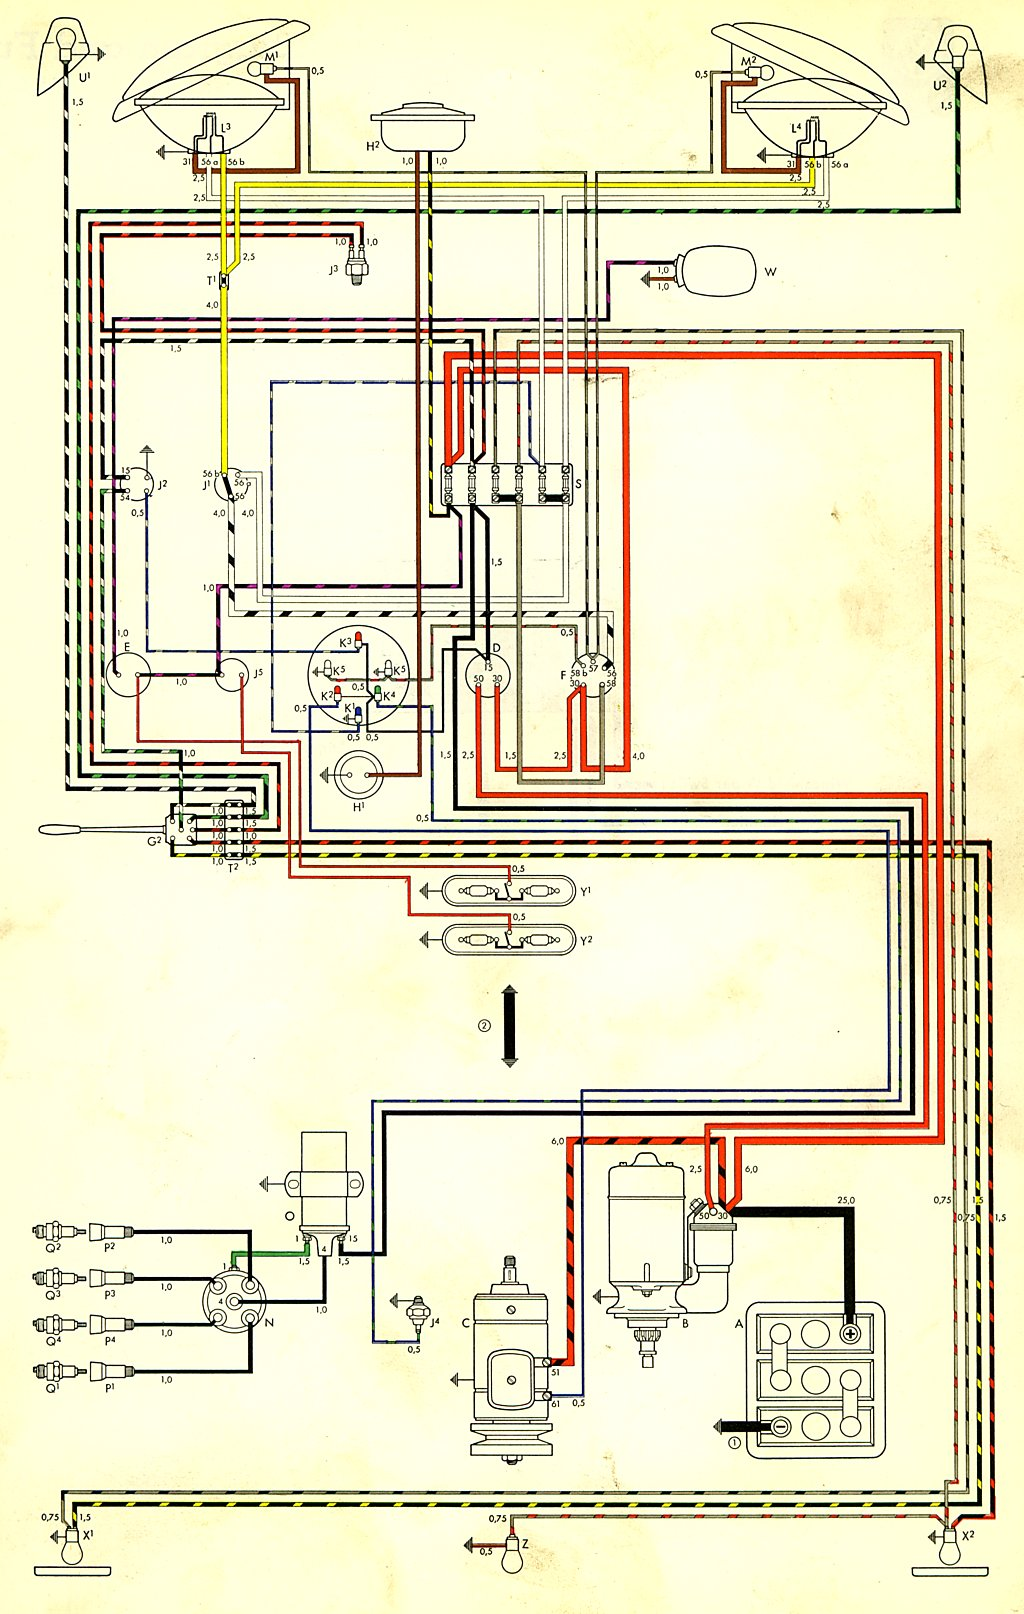 bus_59_USA 1959 bus wiring diagram (usa) thegoldenbug com Volkswagen Type 2 Wiring Harness at crackthecode.co